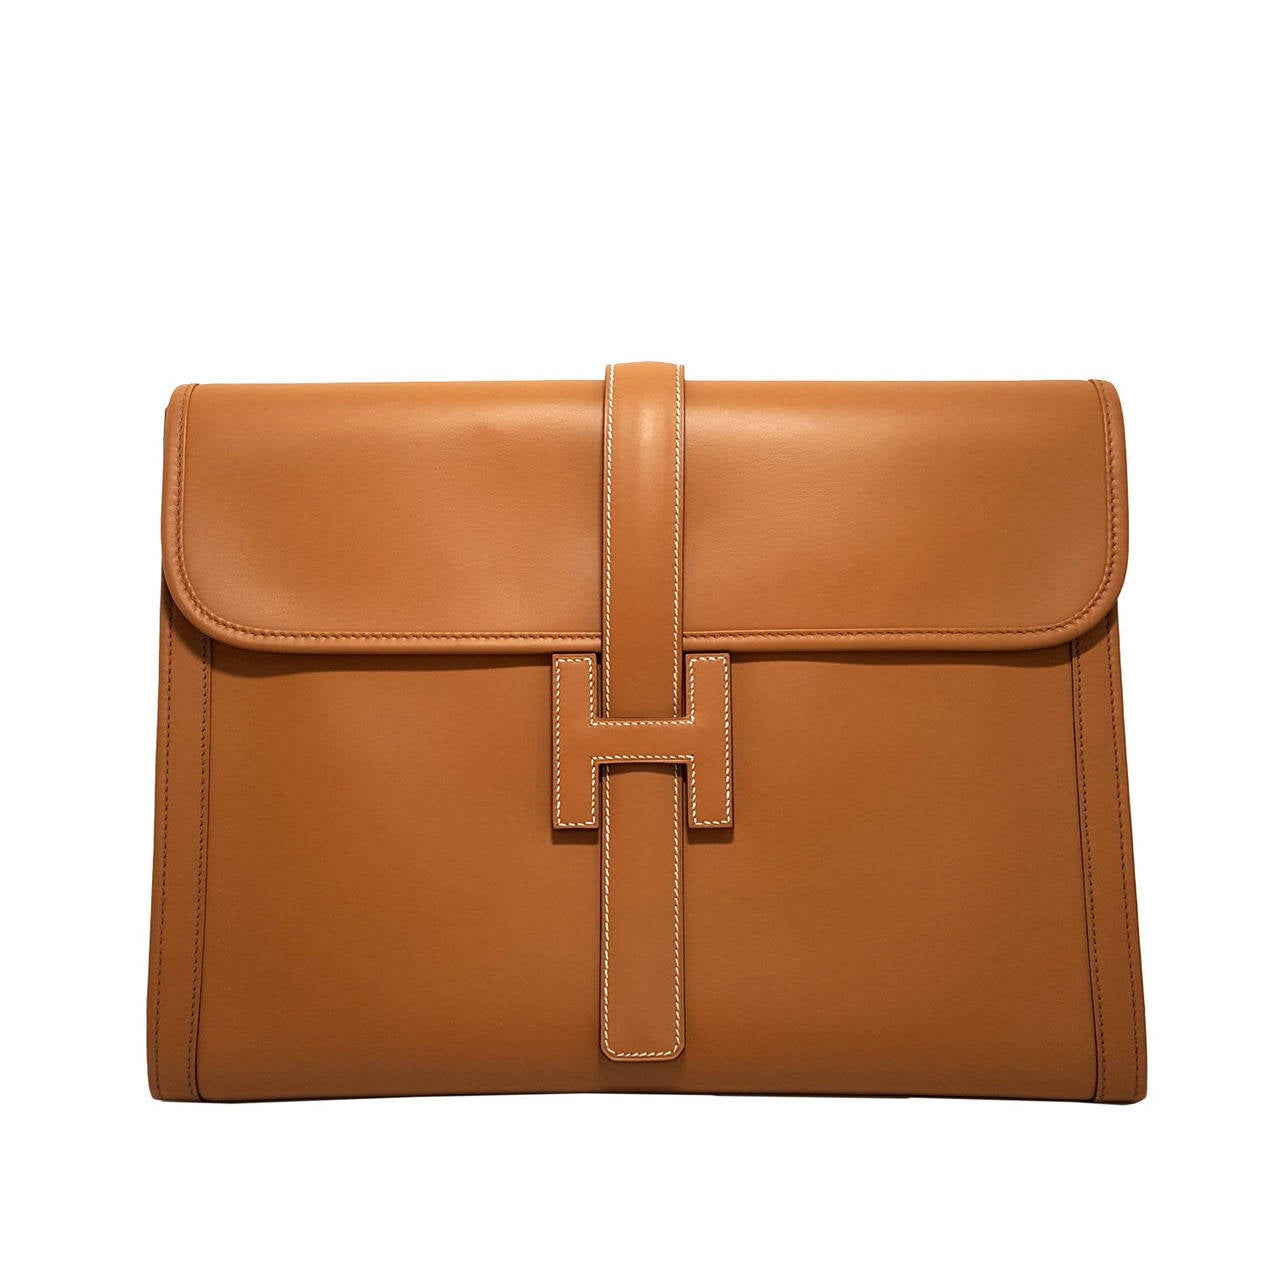 HERMES Large Golden Jige Clutch in perfect Condition. For Sale